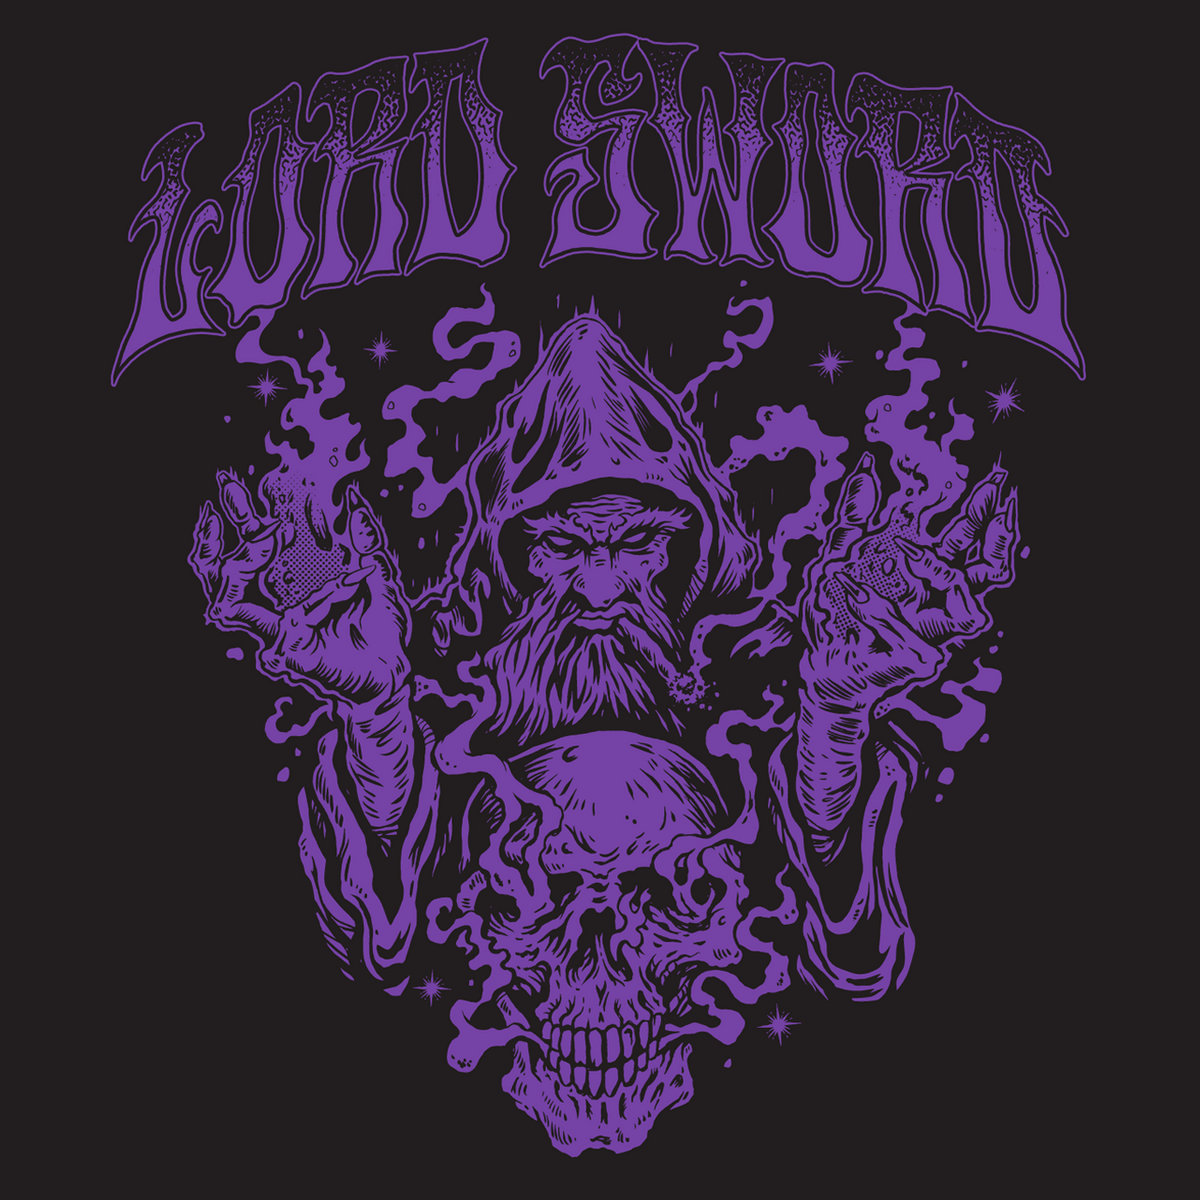 Merch | Lord Sword